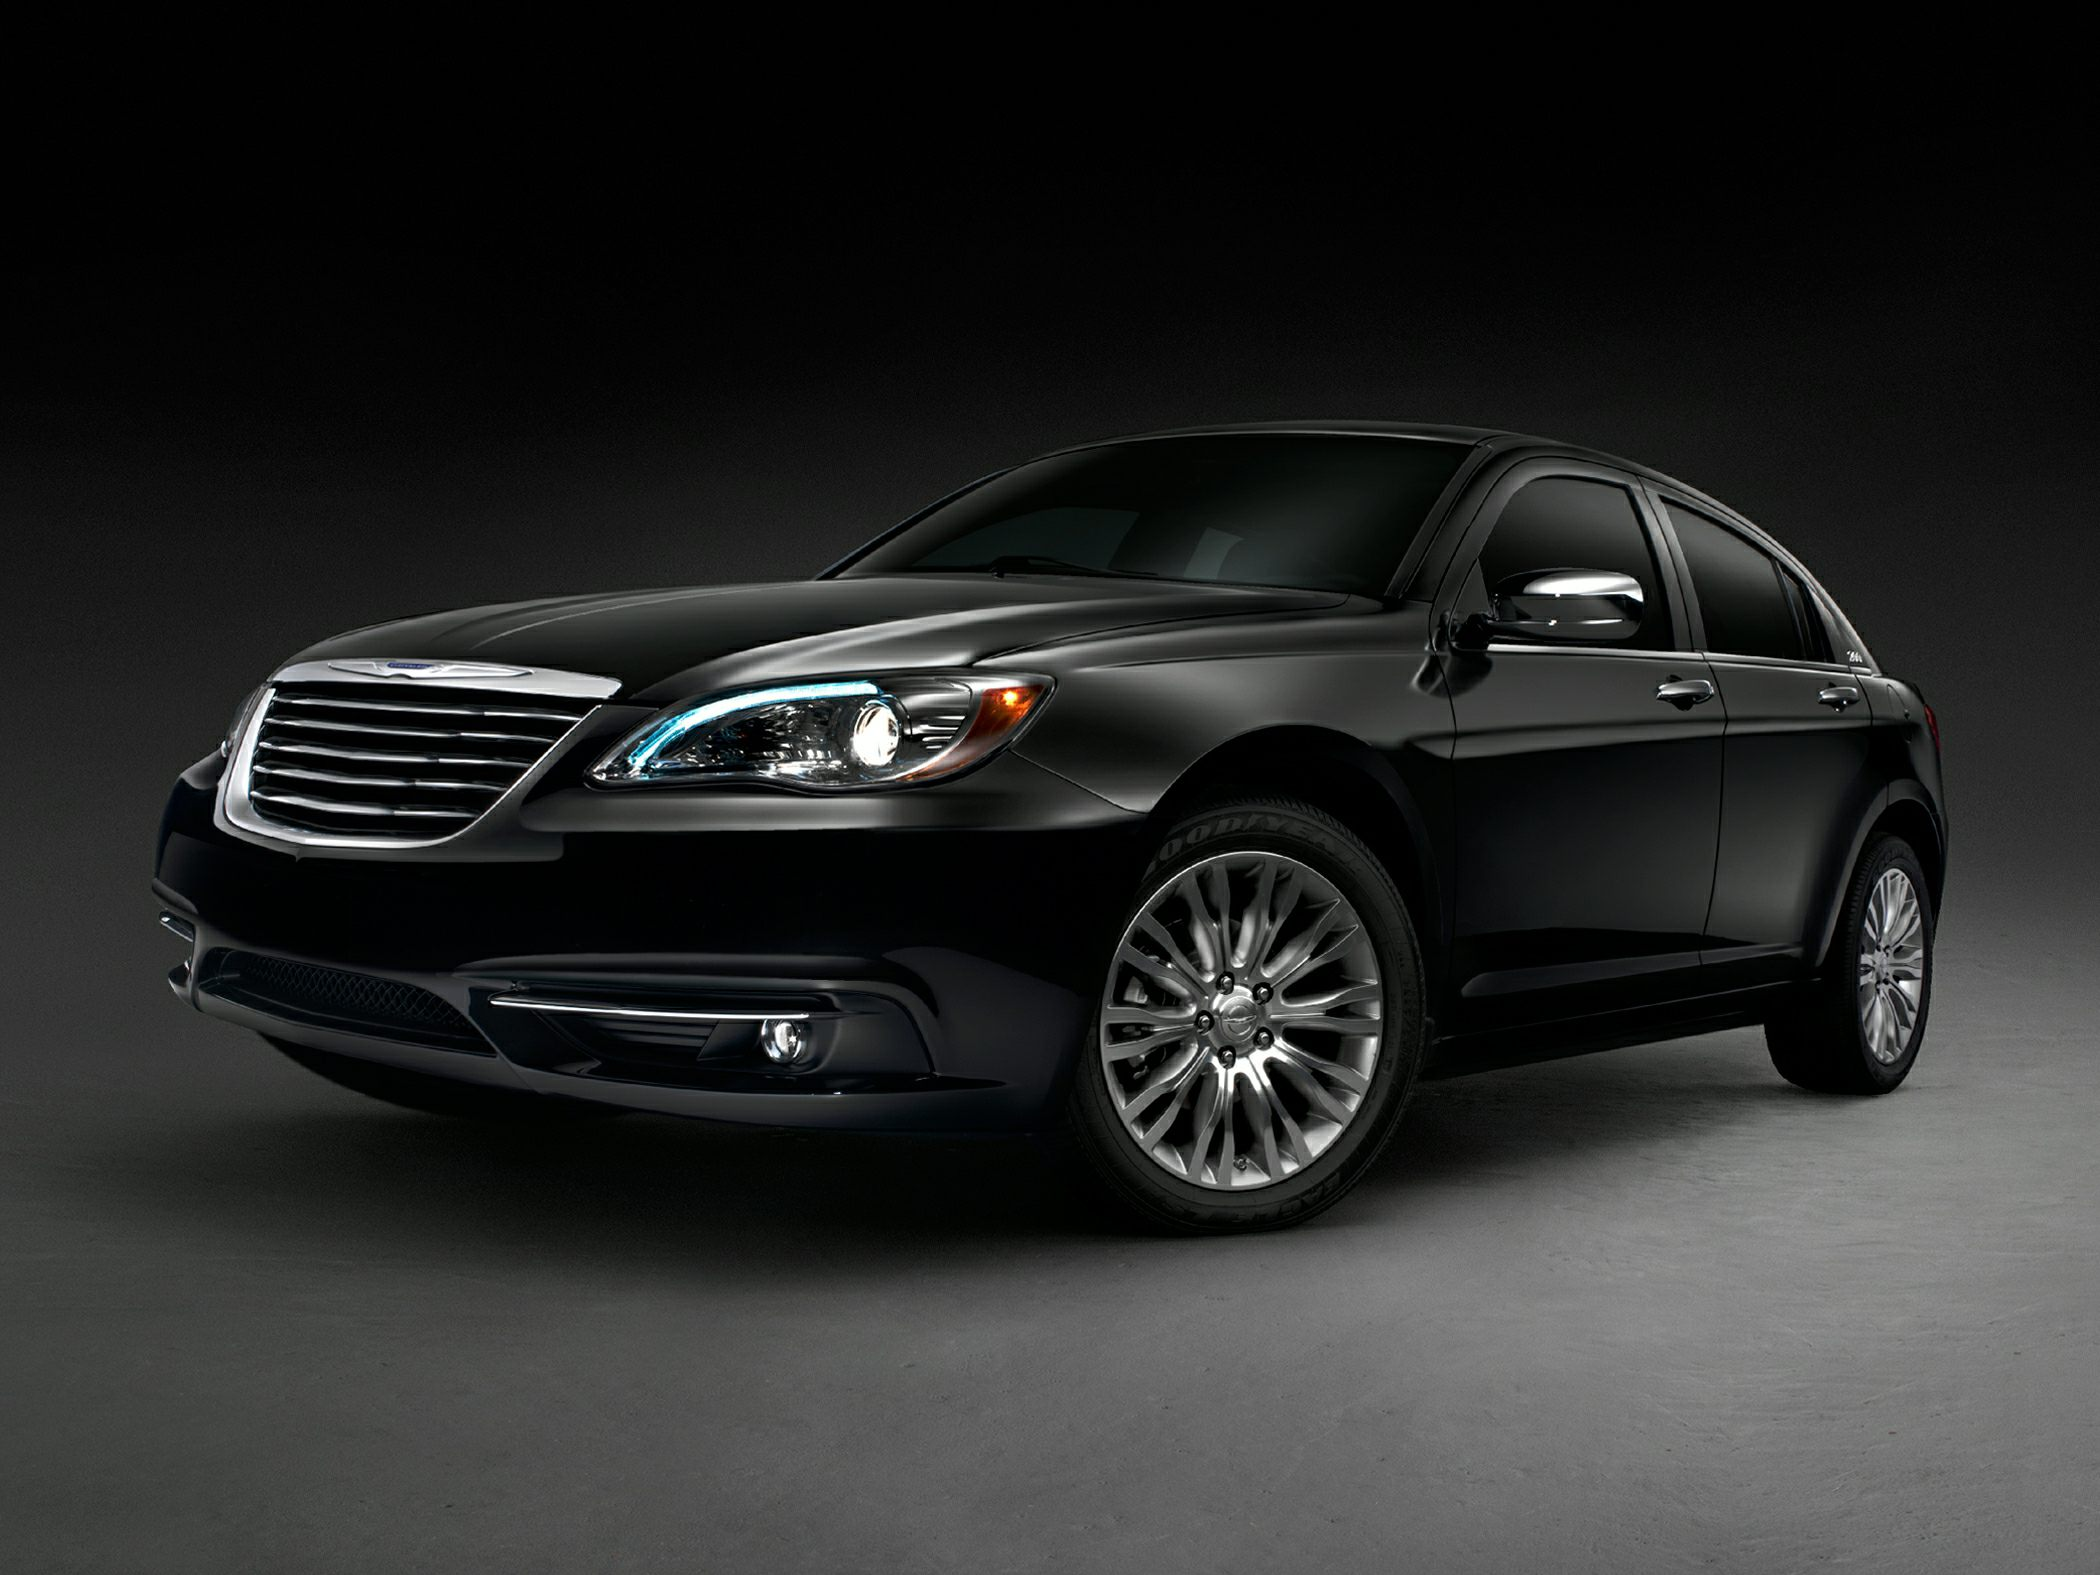 2012 Chrysler 200 LX One-owner Your lucky day New Arrival Tired of the same tiresome drive Well